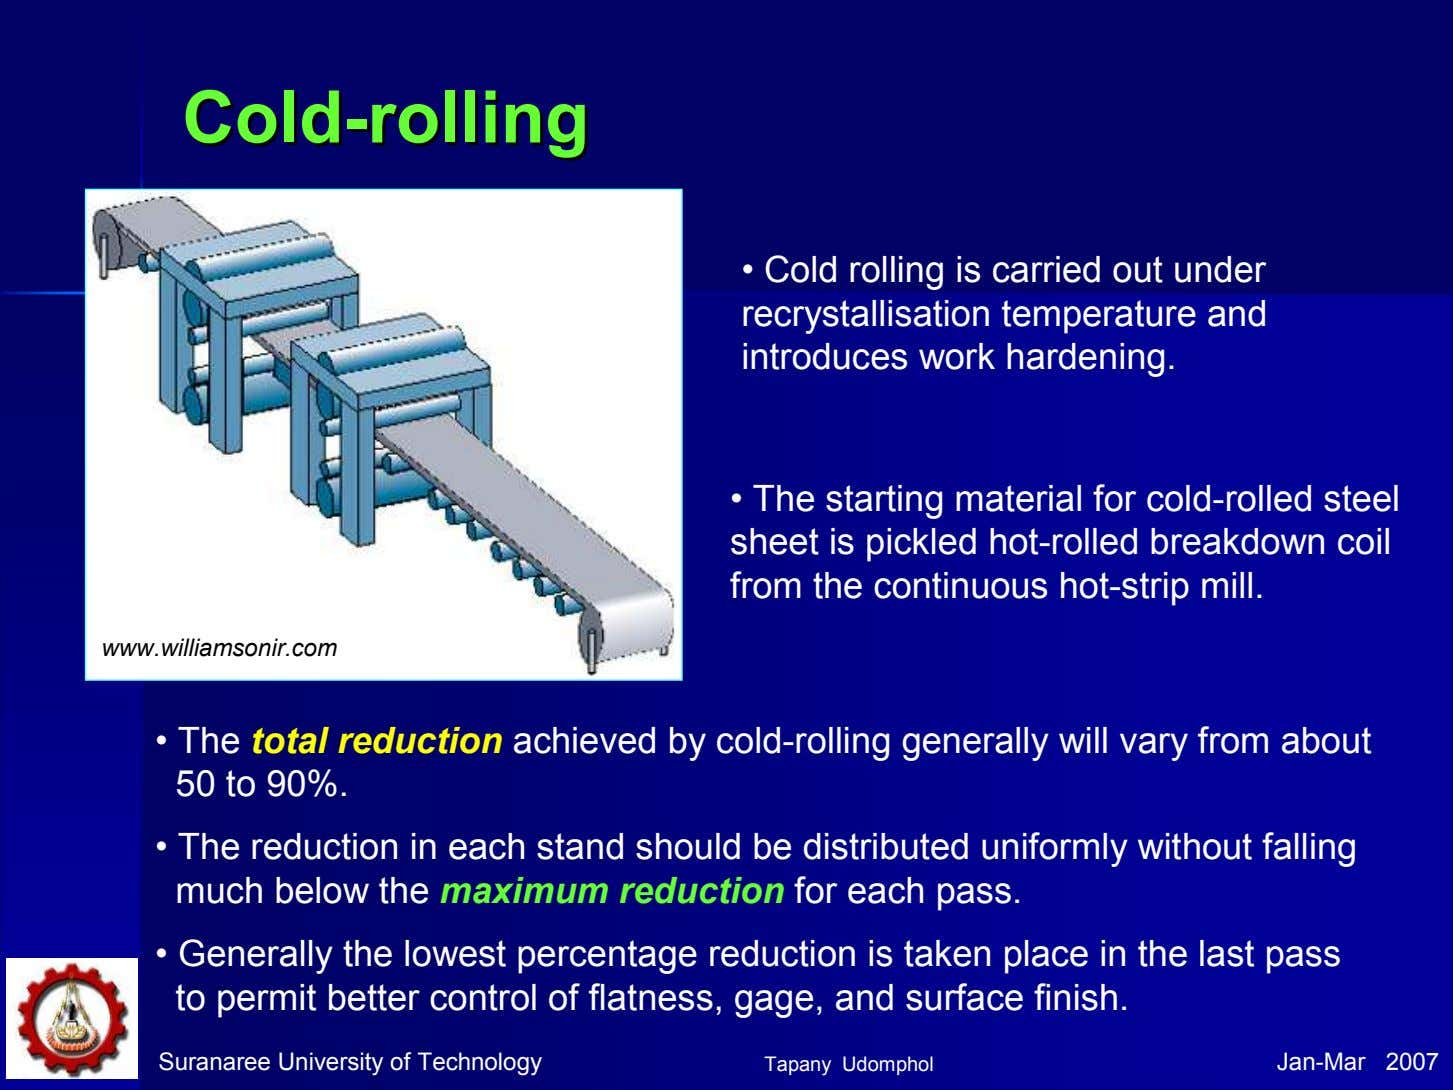 ColdCold--rollingrolling • Cold rolling is carried out under recrystallisation temperature and introduces work